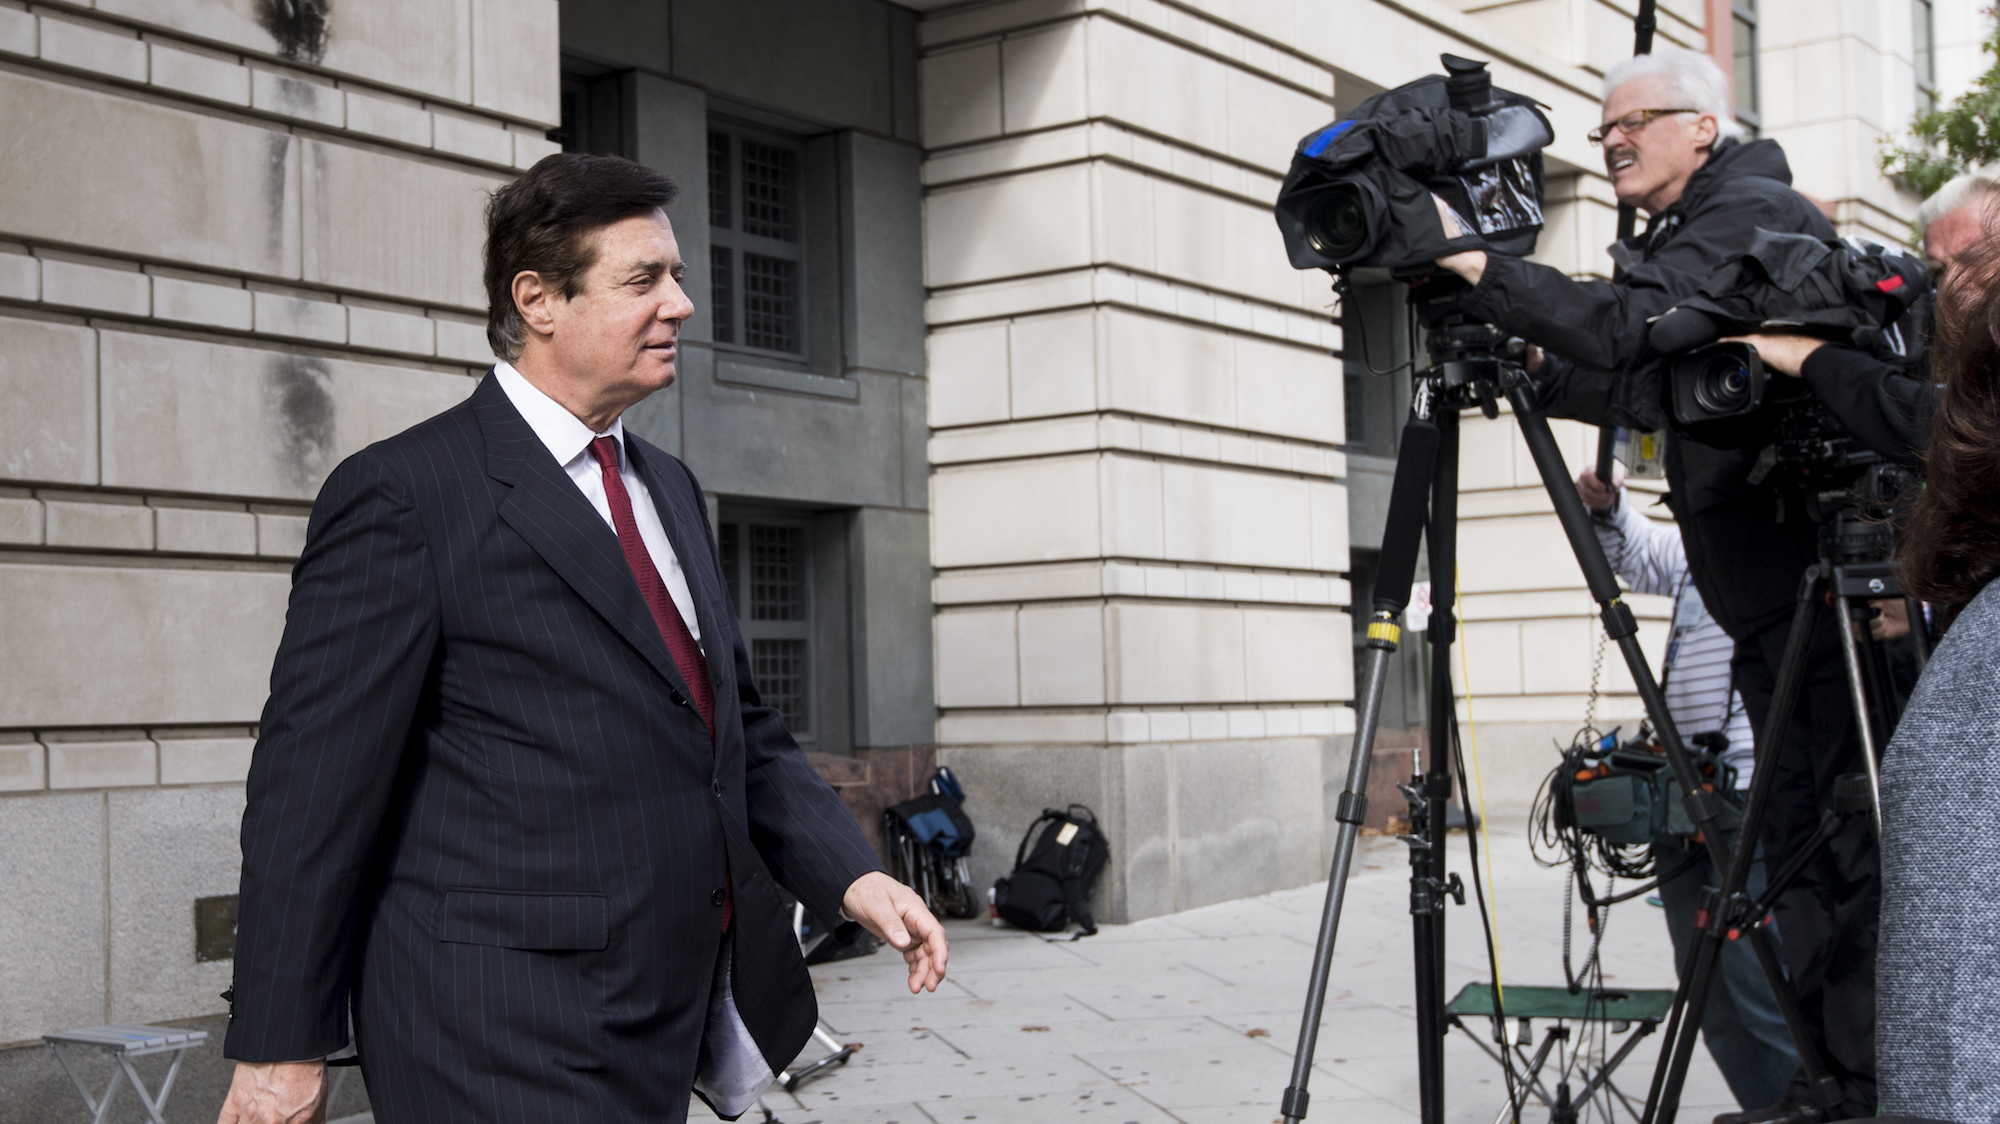 Judge jails ex-Trump campaign chair Manafort ahead of trial